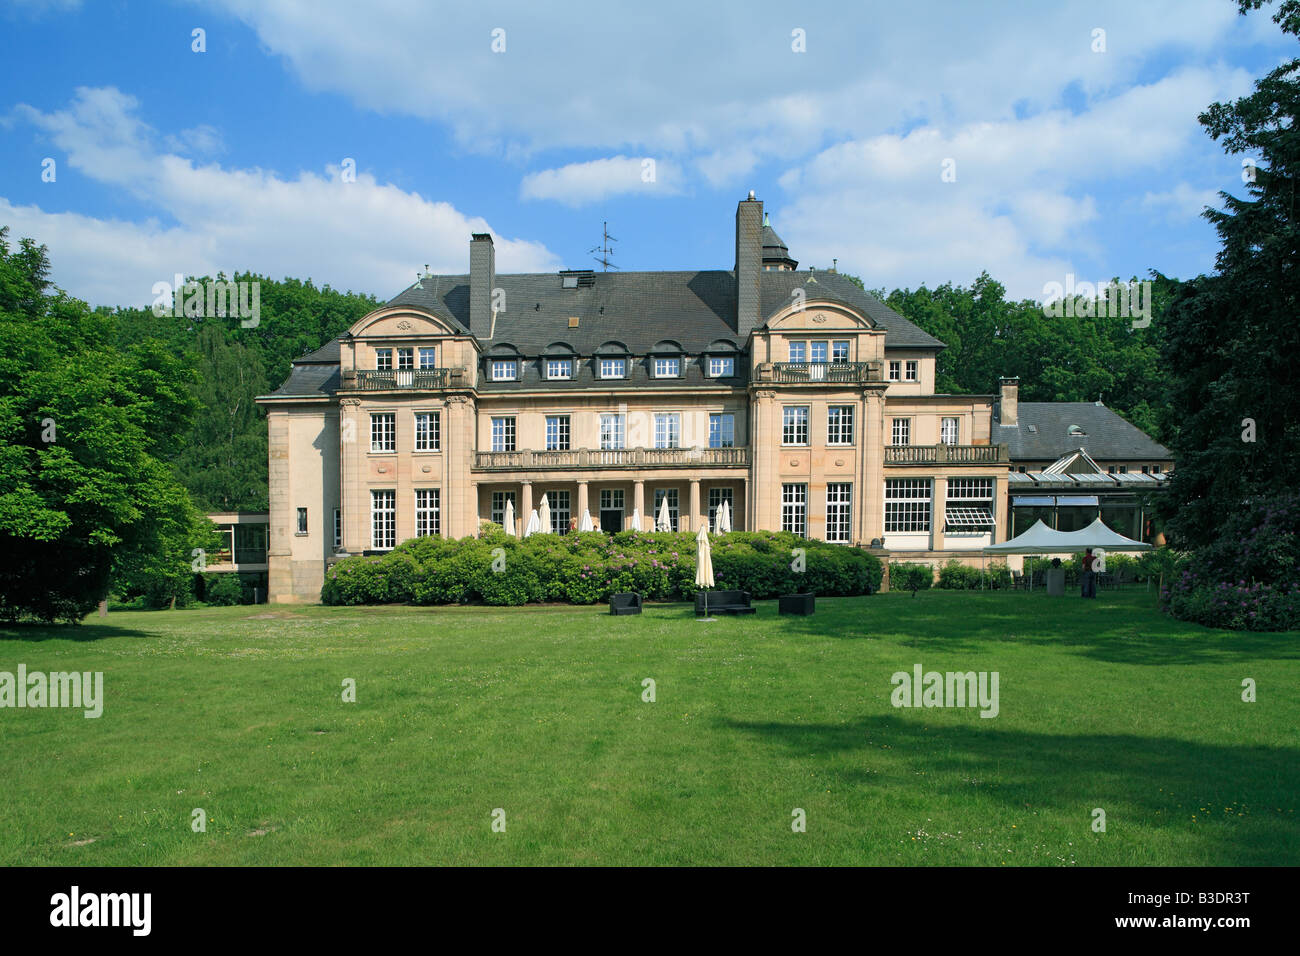 Küchen Mülheim Broich Castle Stock Photos Broich Castle Stock Images Alamy